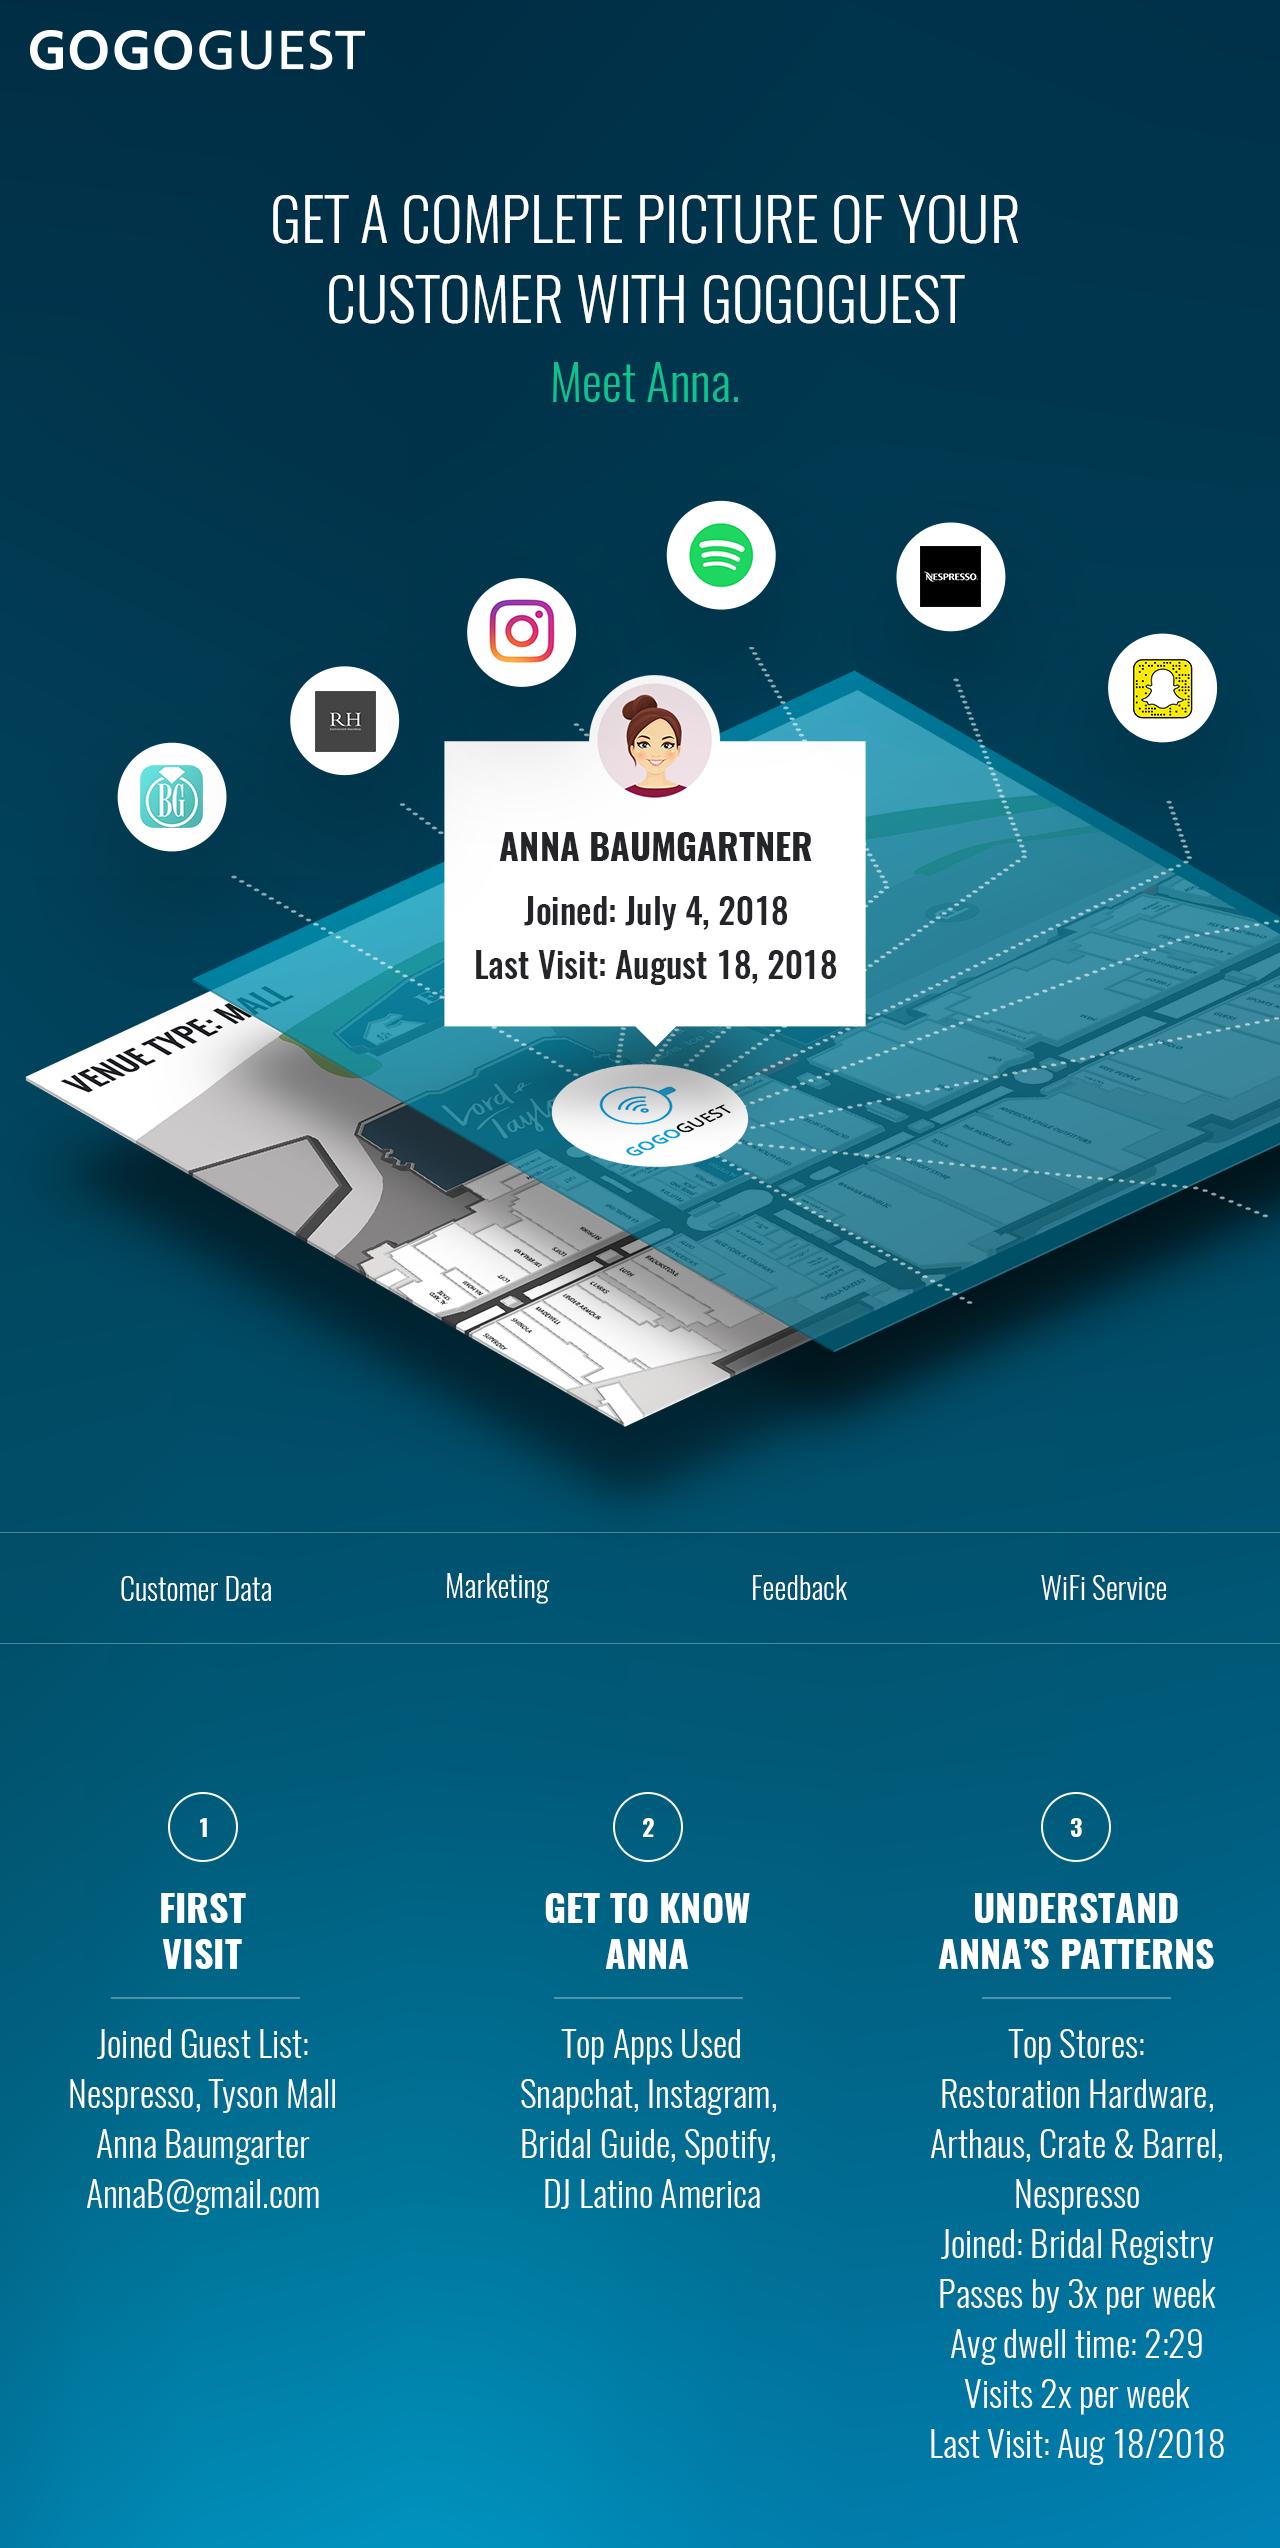 GoGoGuest Unified Customer Data and Marketing with Business WiFi Service